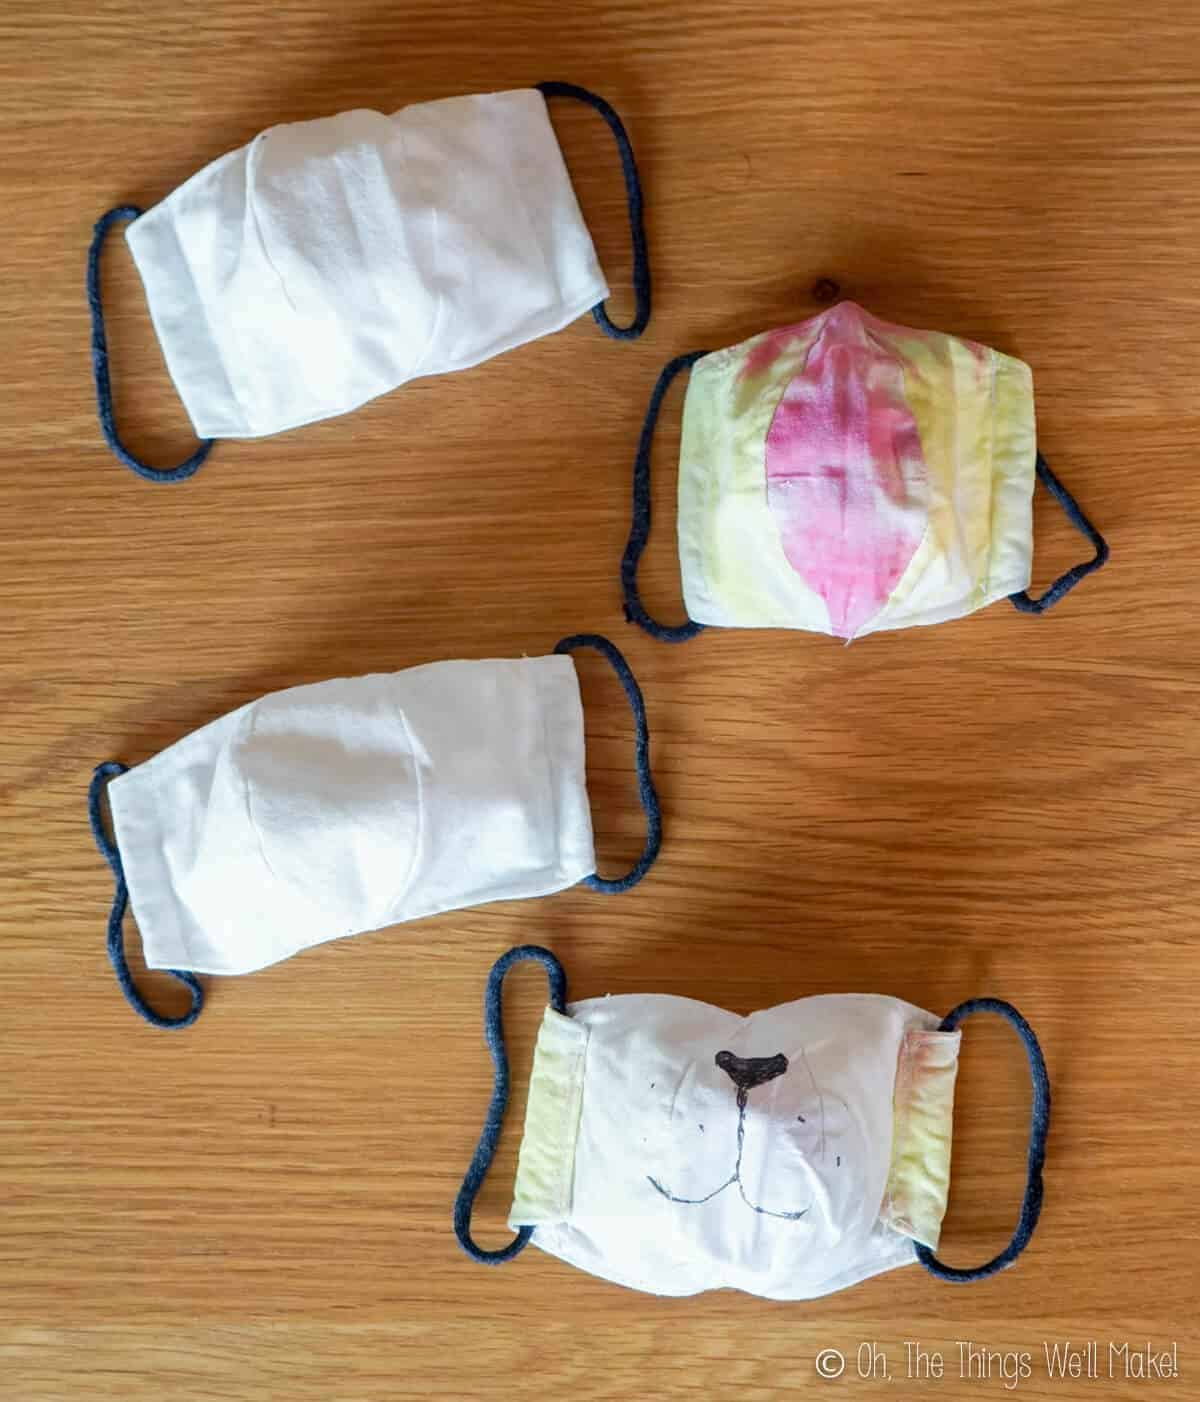 Overhead view of 4 cloth face masks